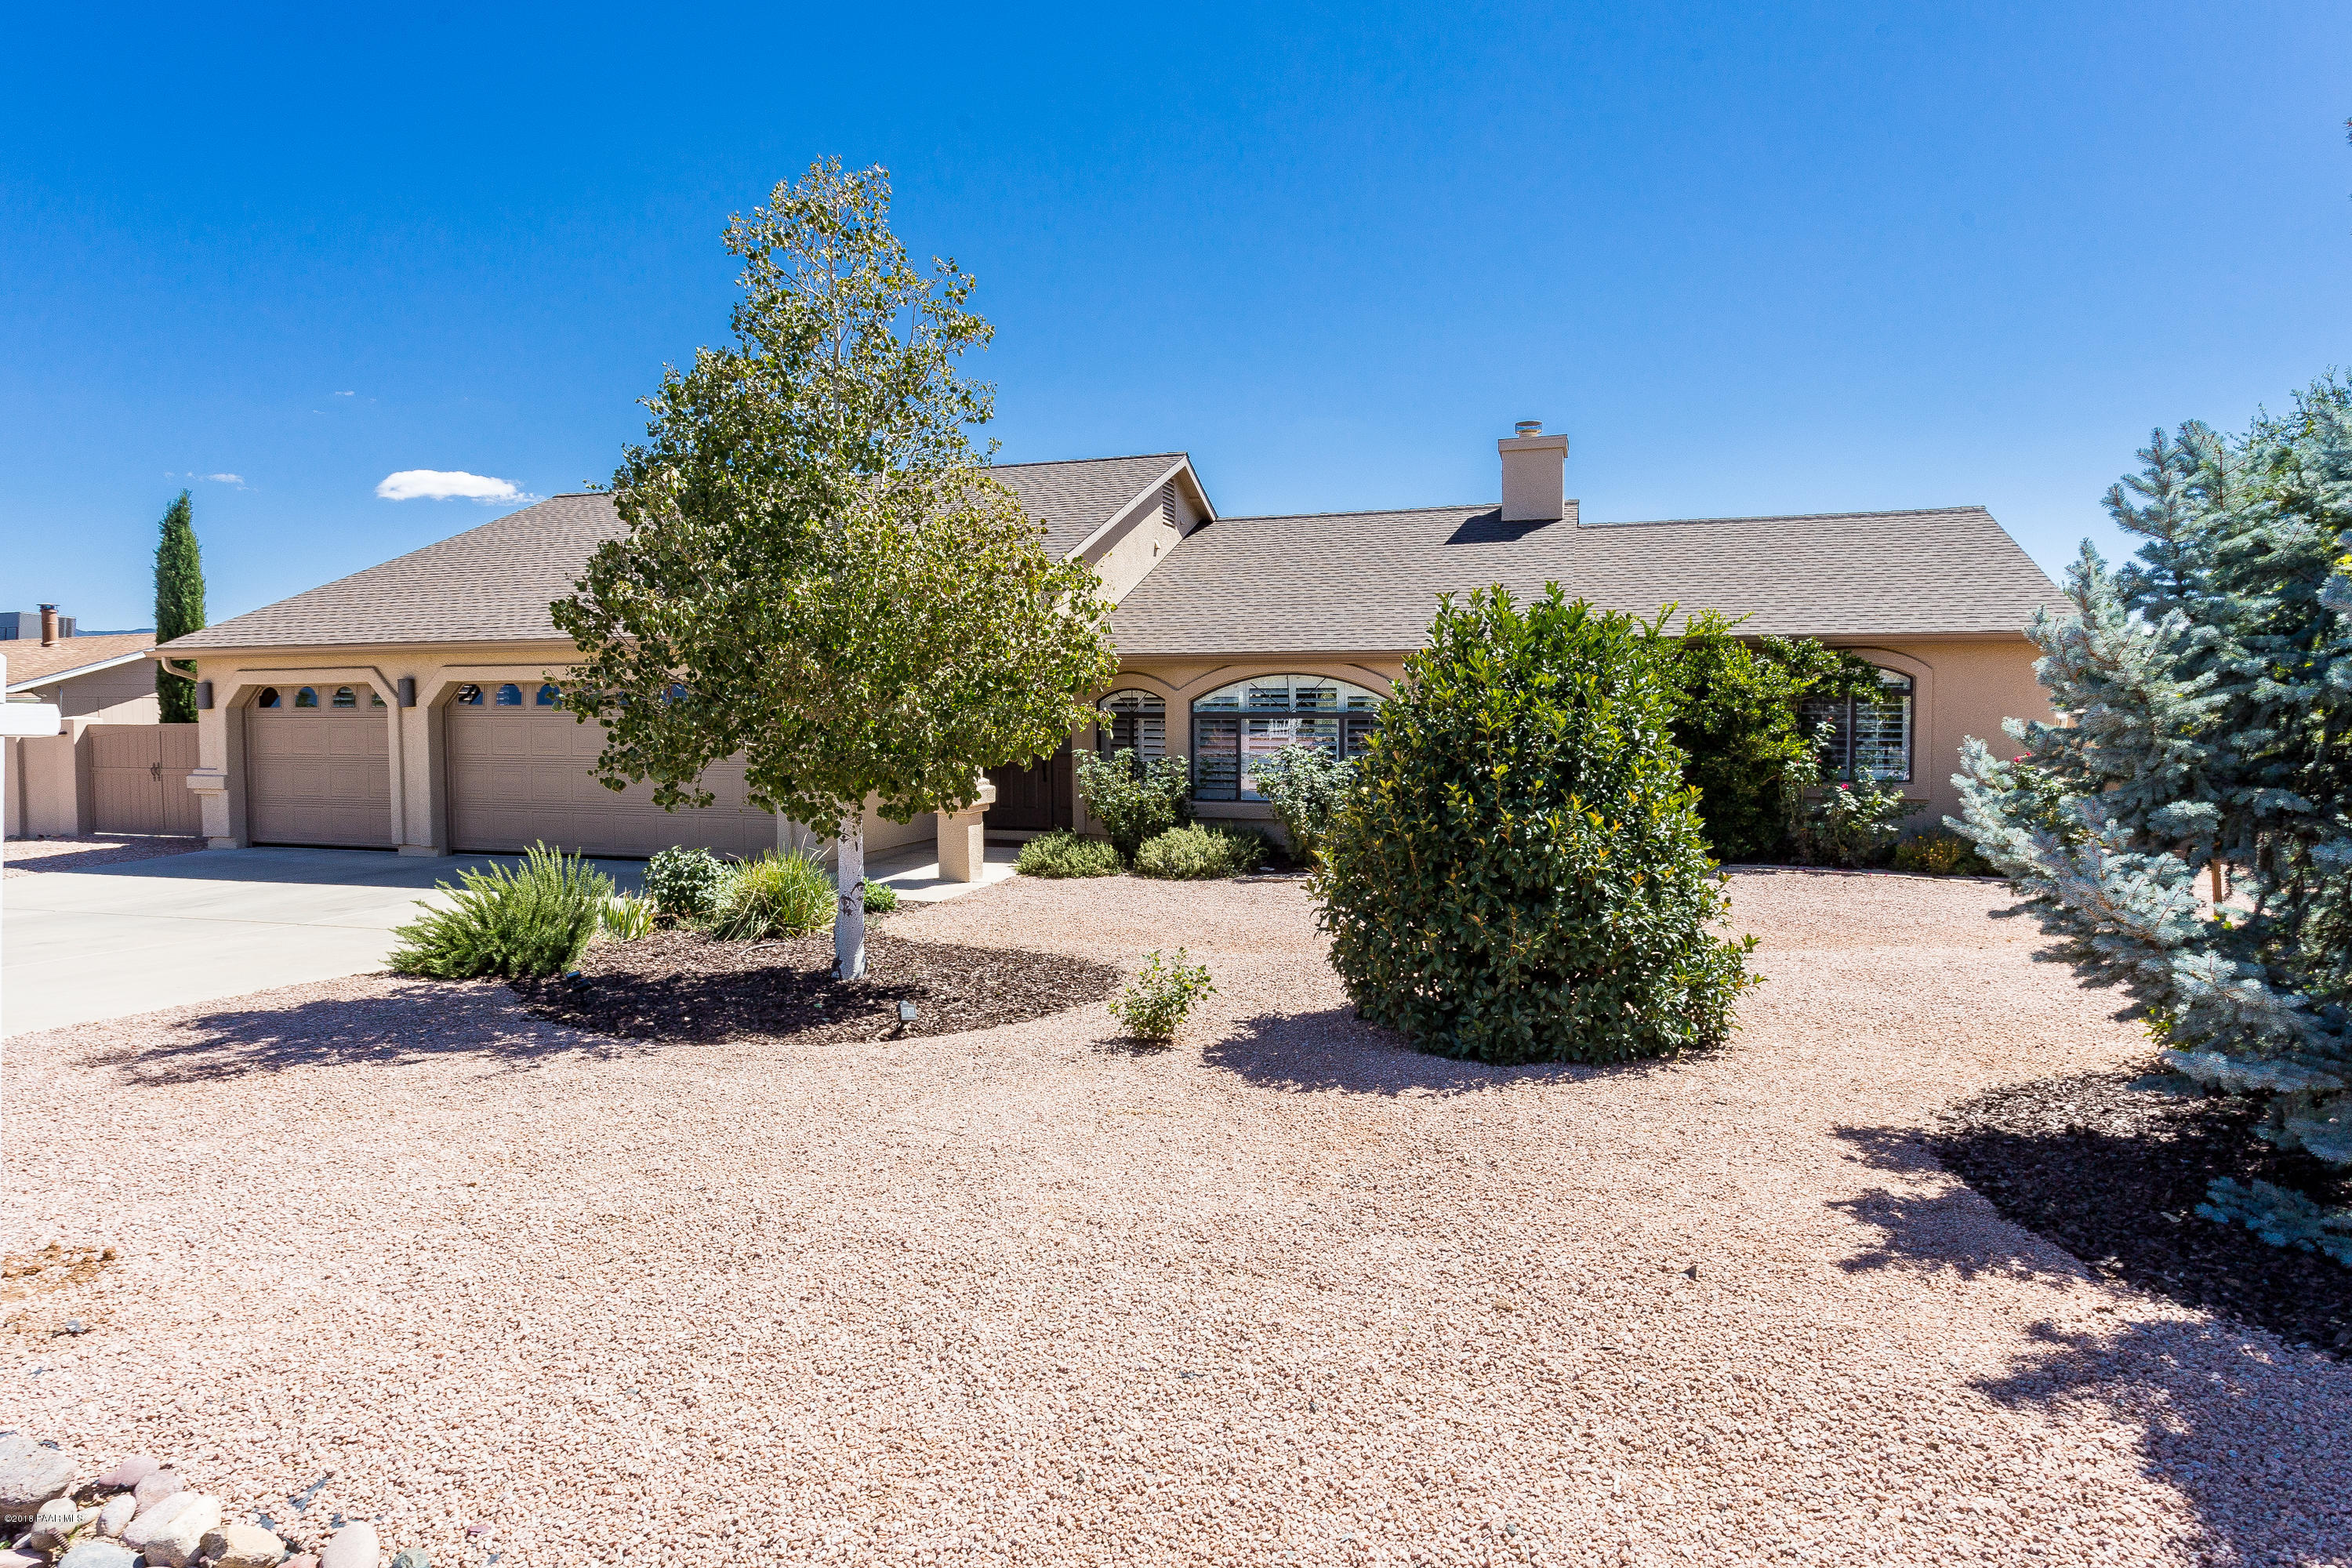 4229 N Bonita Way, Prescott Valley Az 86314